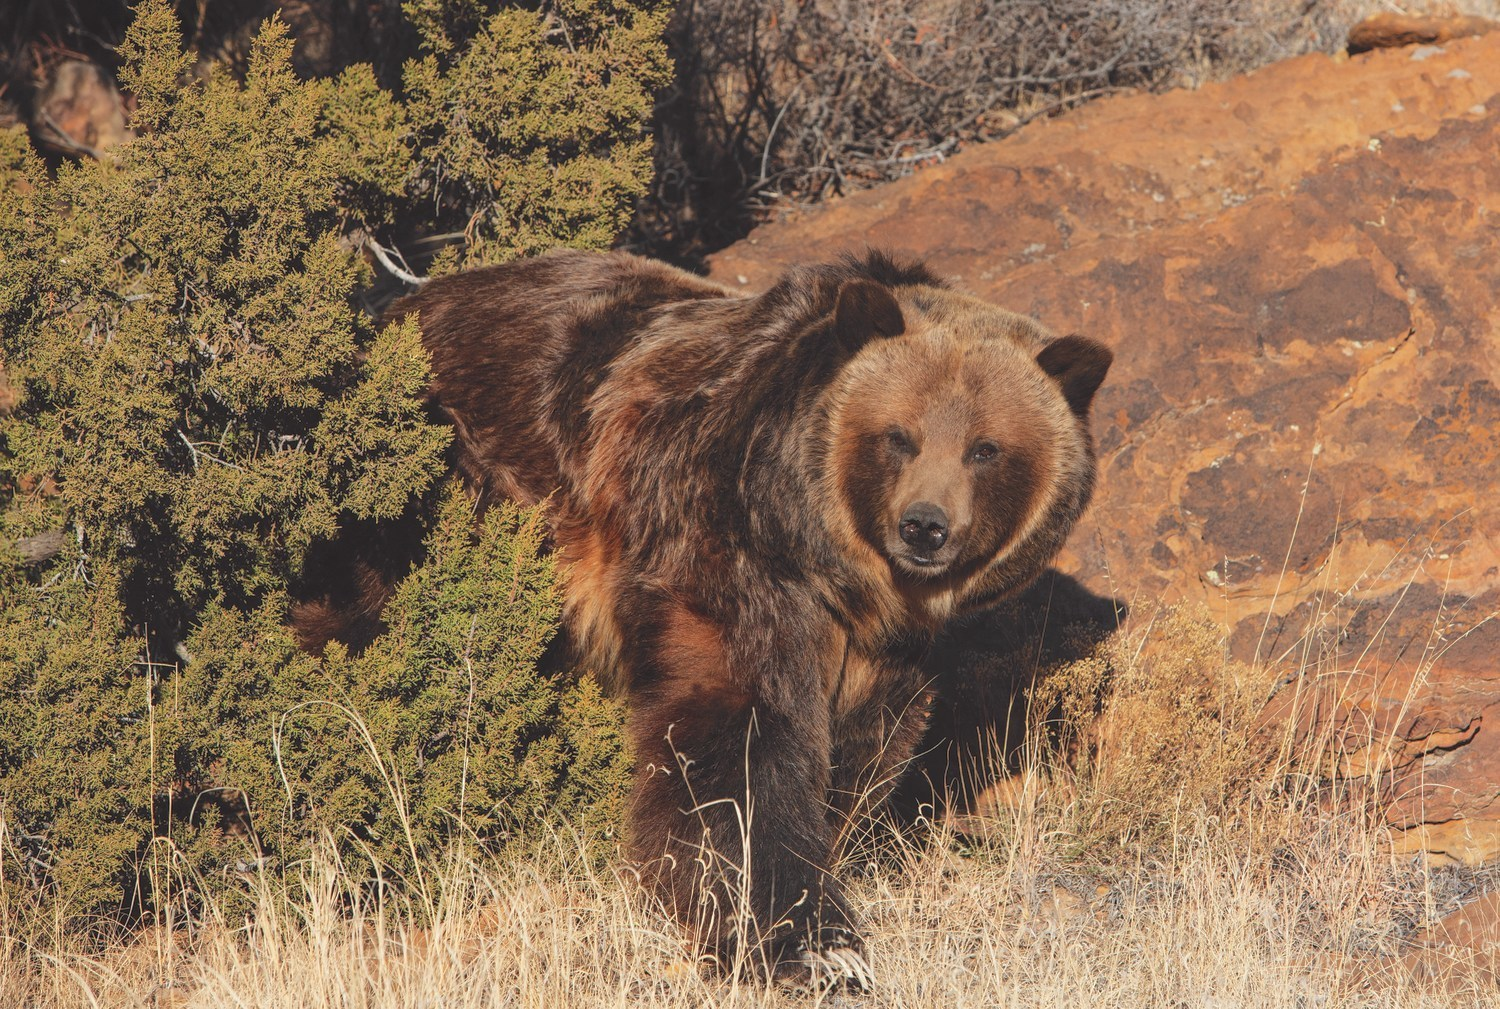 Rescued Grizzly, Miss Montana, exploring her new habitat at The Wild Animal Refuge in Colorado.